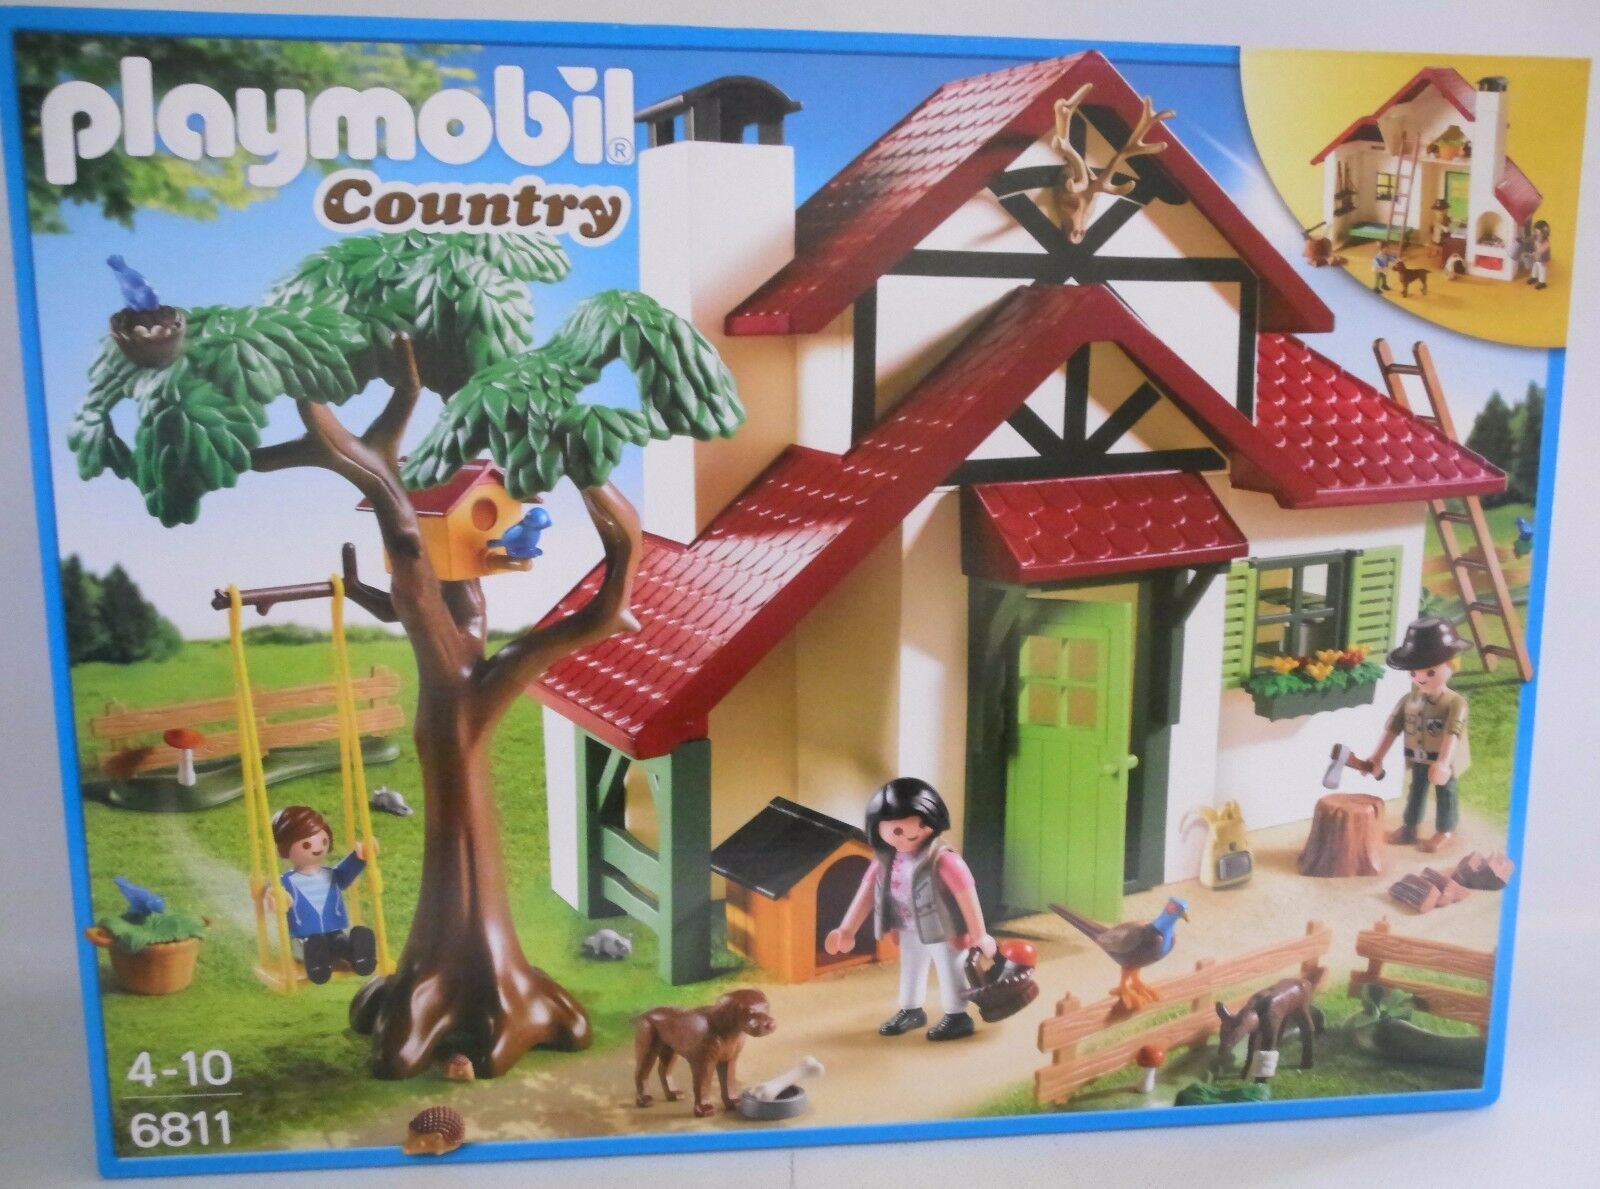 NEU PLAYMOBIL® COUNTRY OVP 6811 Forsthaus OVP COUNTRY 2b2d81